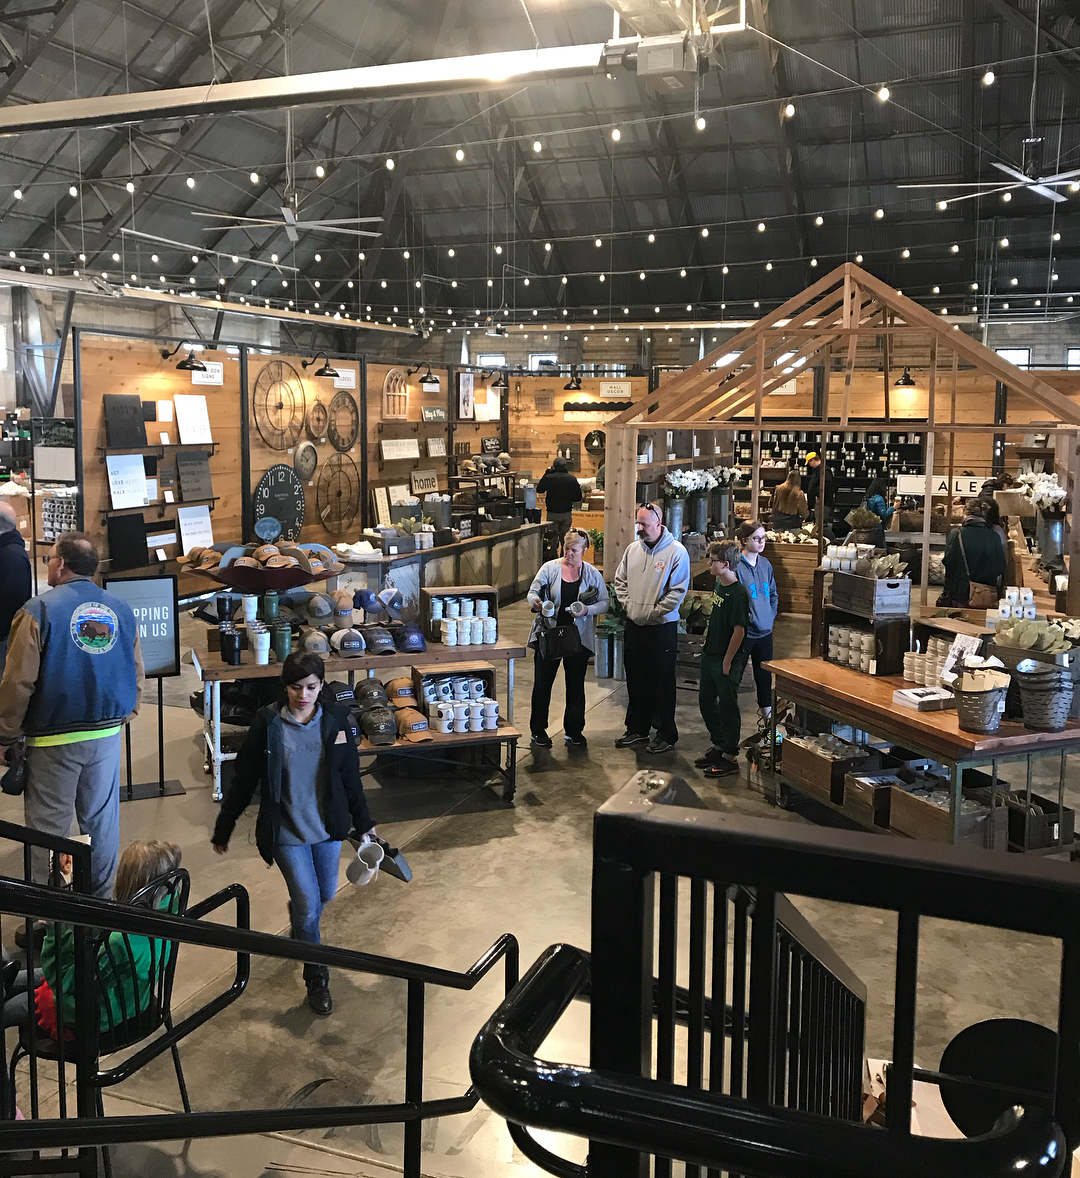 Top 10 Places To Shop Waco The Heart Of Texas